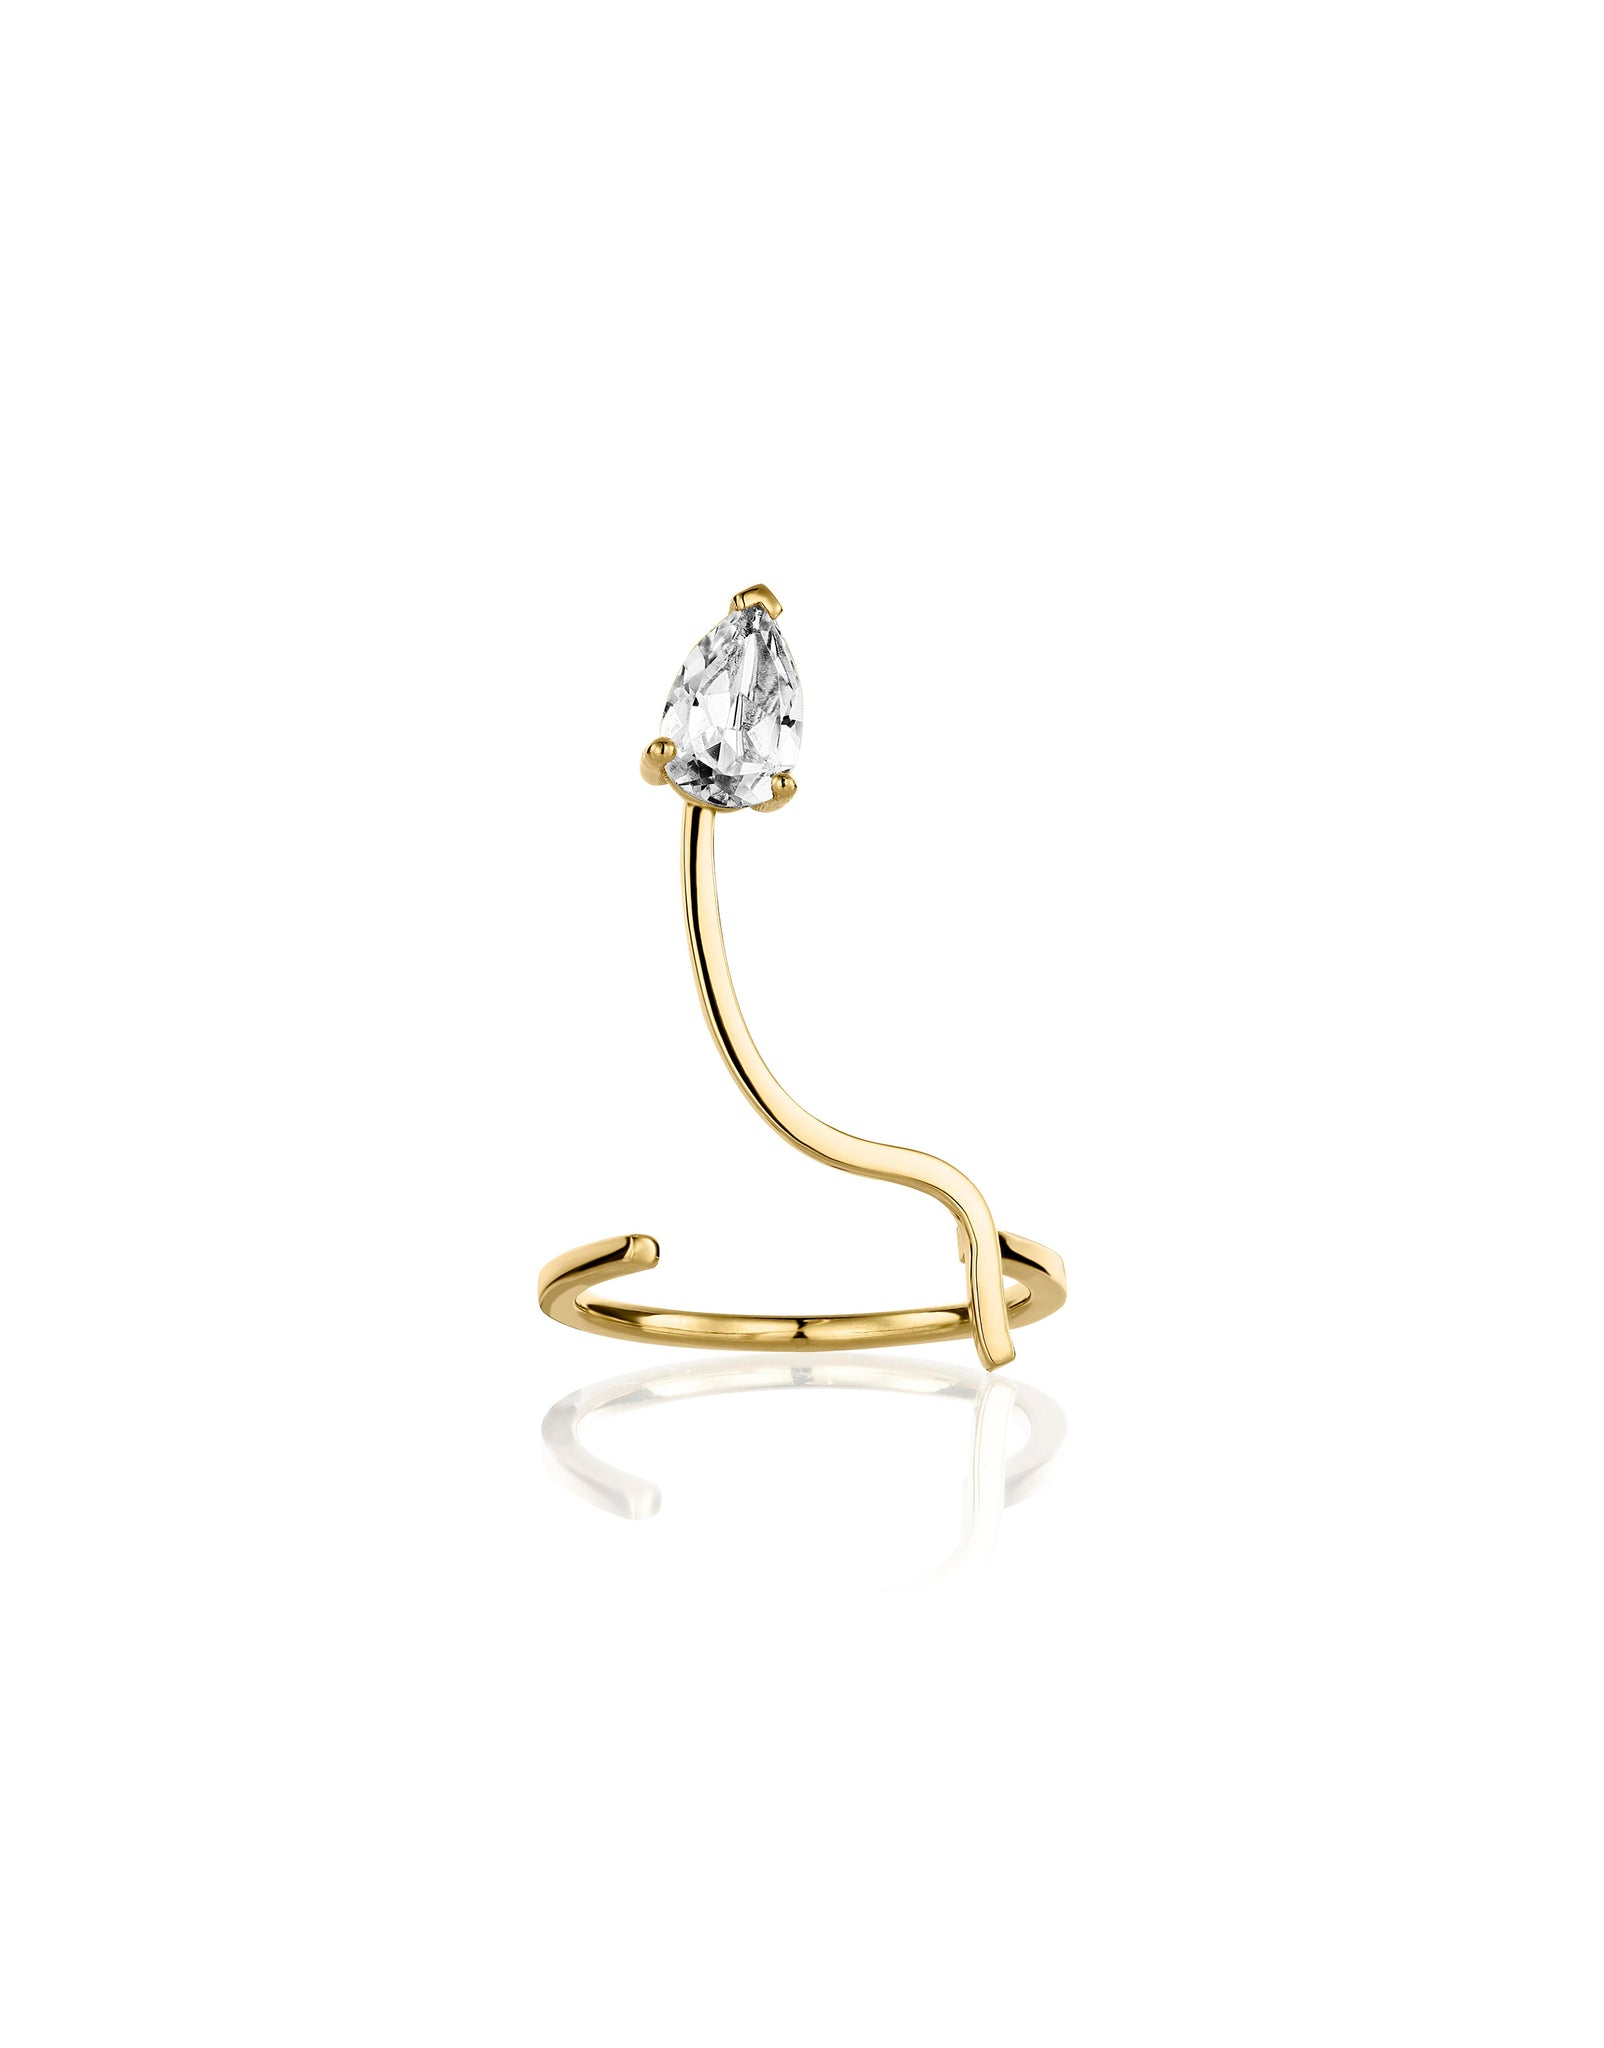 Ring 18K gold white topaz - Lina ring topaz  - Nayestones